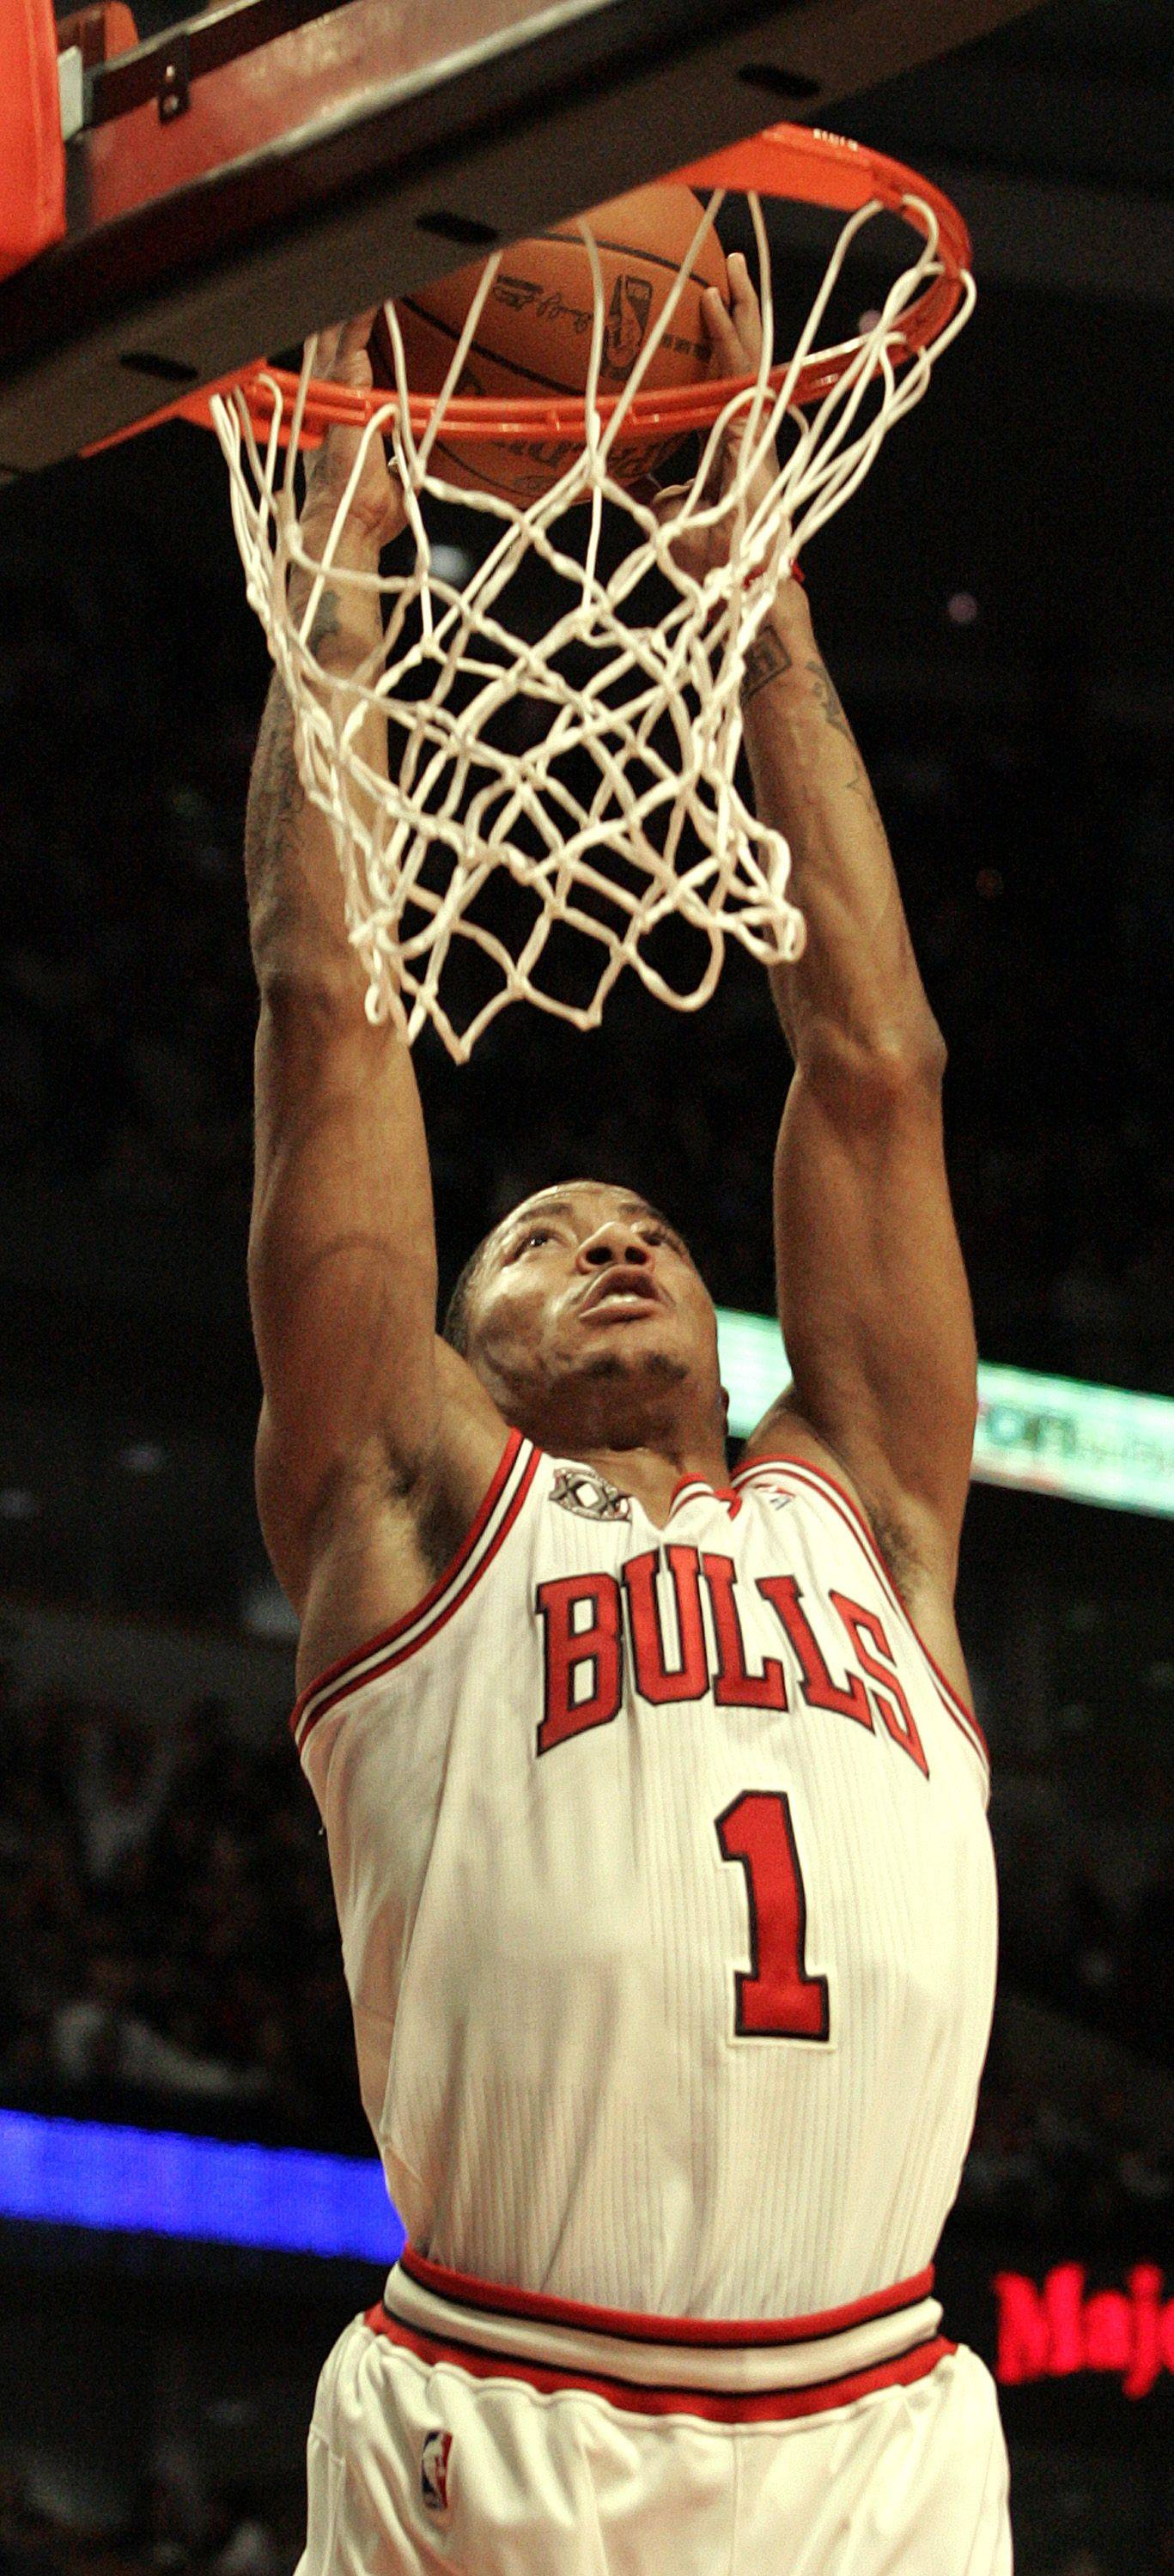 Chicago Bulls' Derrick Rose jams a shot against the Detroit Pistons during the second half of an NBA basketball game Monday, Jan. 10, 2011 in Chicago.